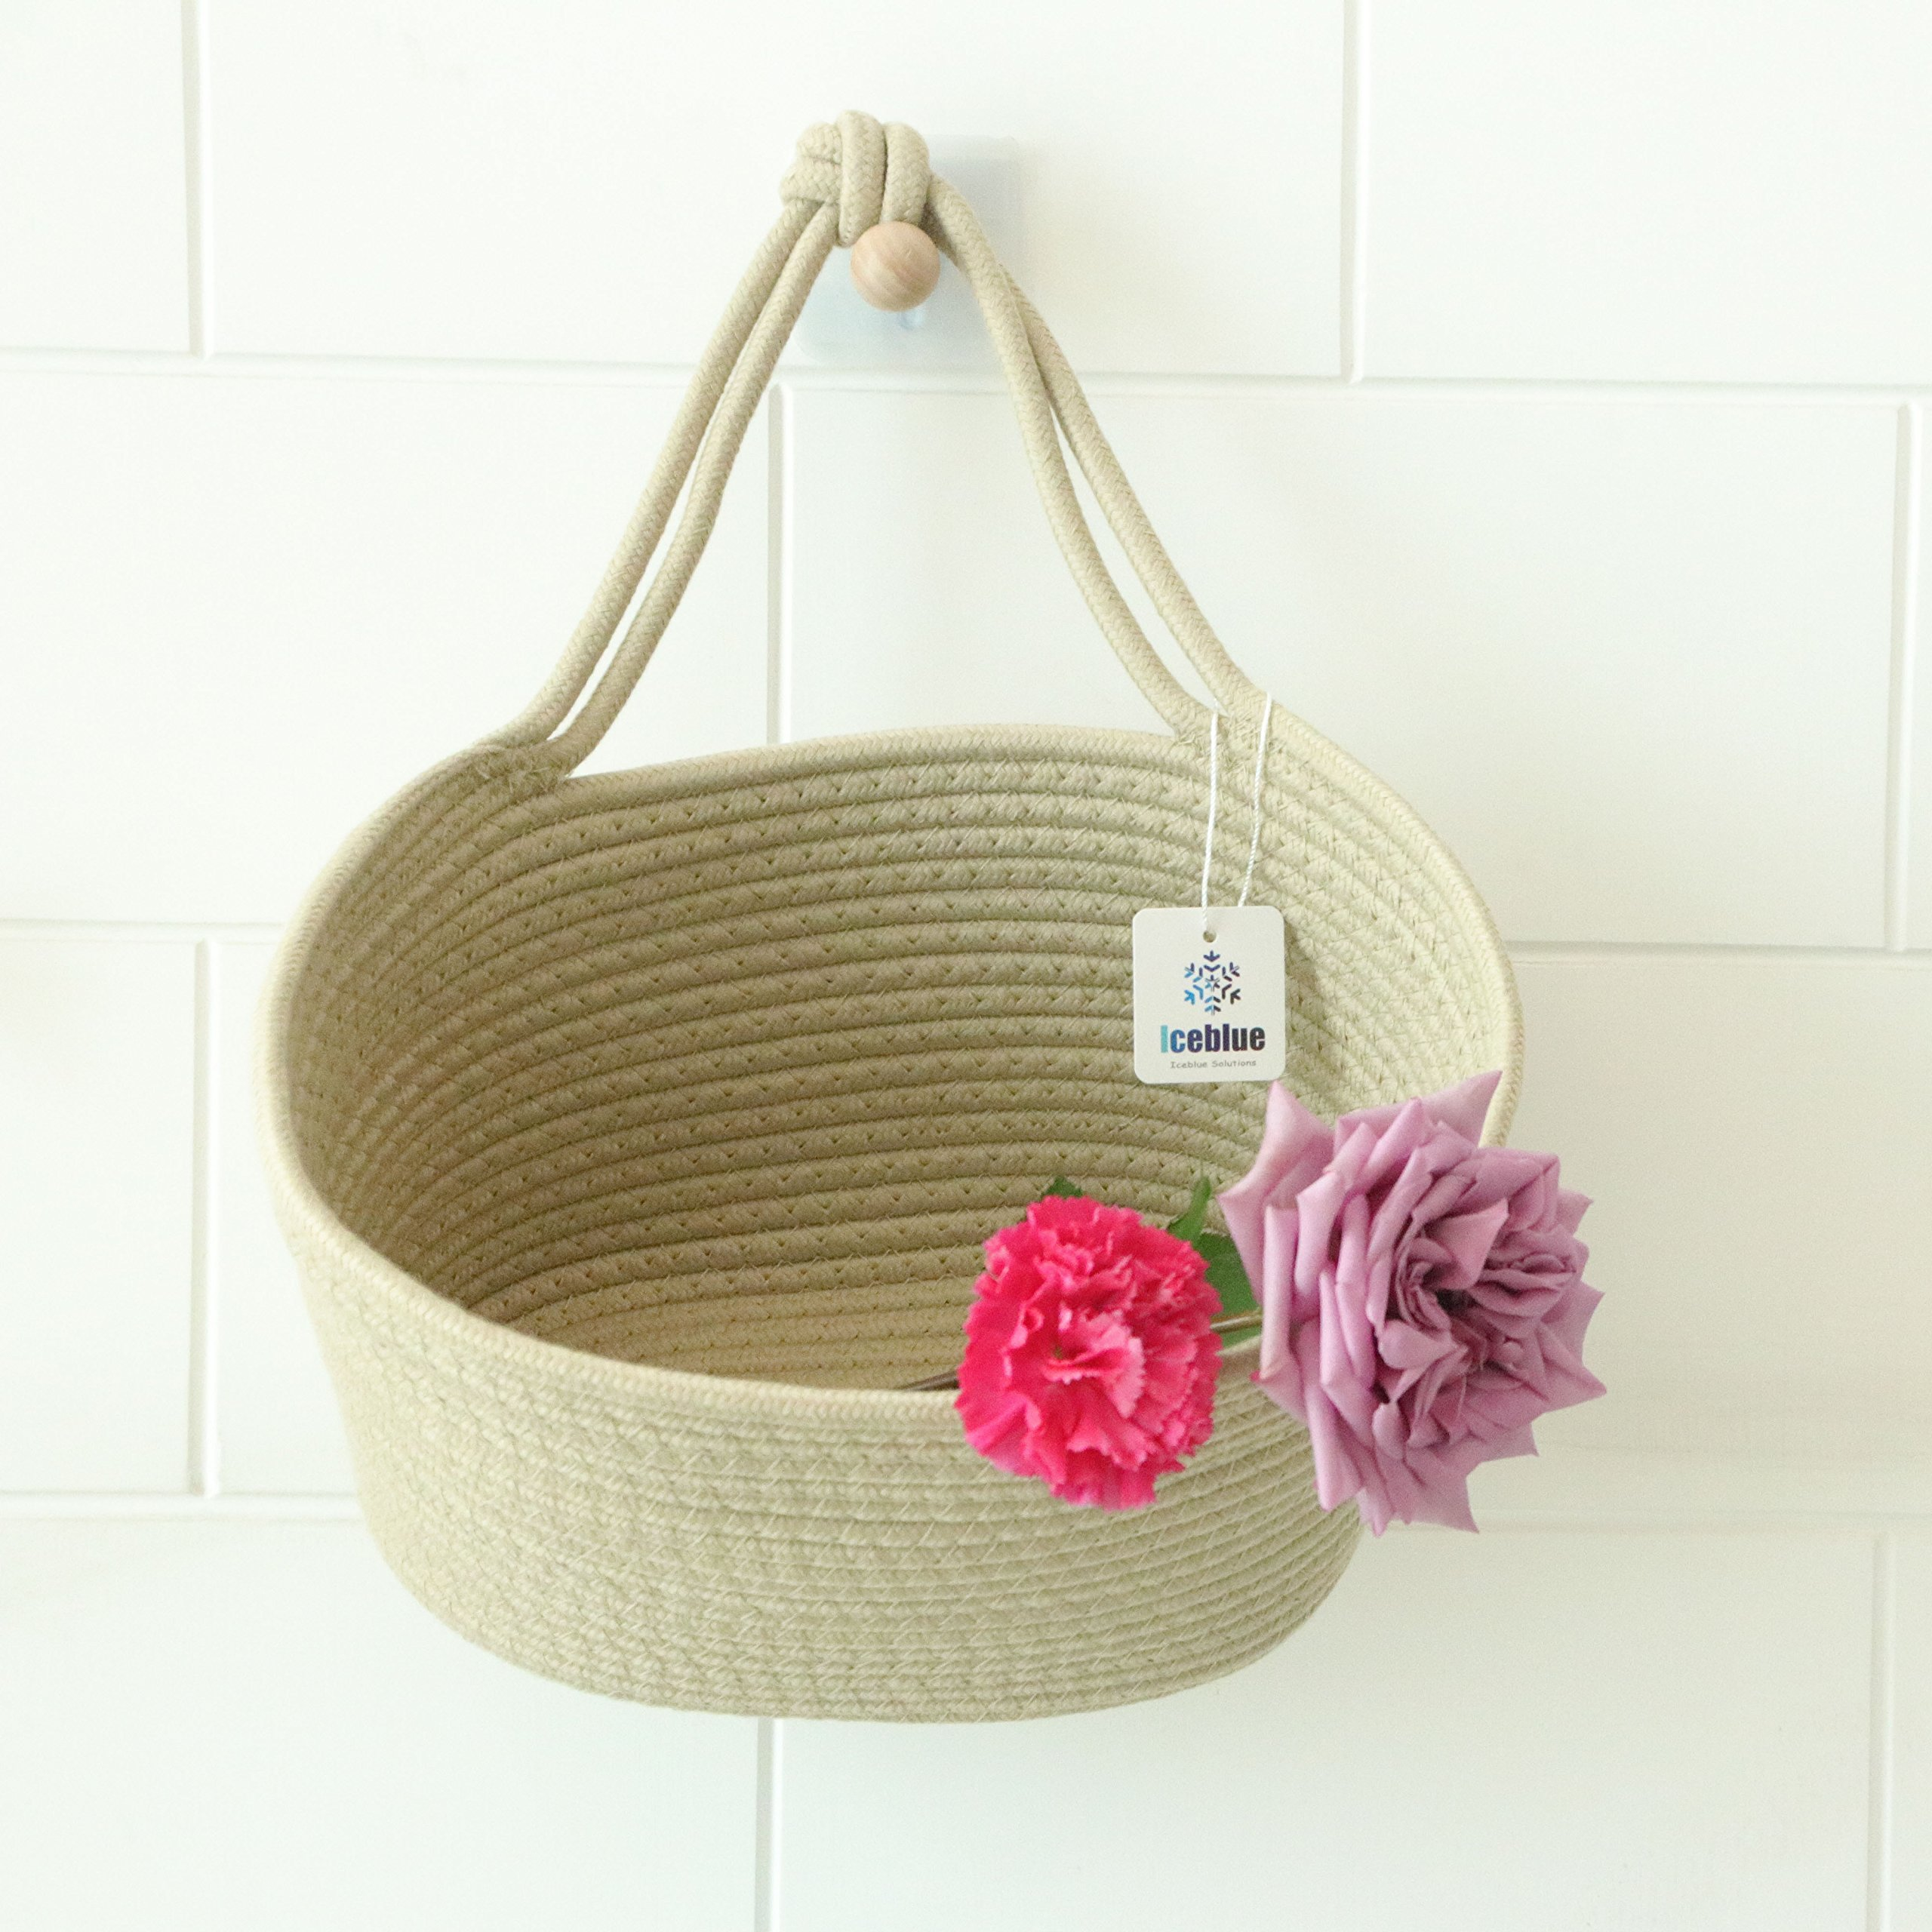 ICEBLUE 9.8''X5.9''X7'' Flaxen Oval Cotton Rope Over Wall Door Closet Window Hanging Storage Basket